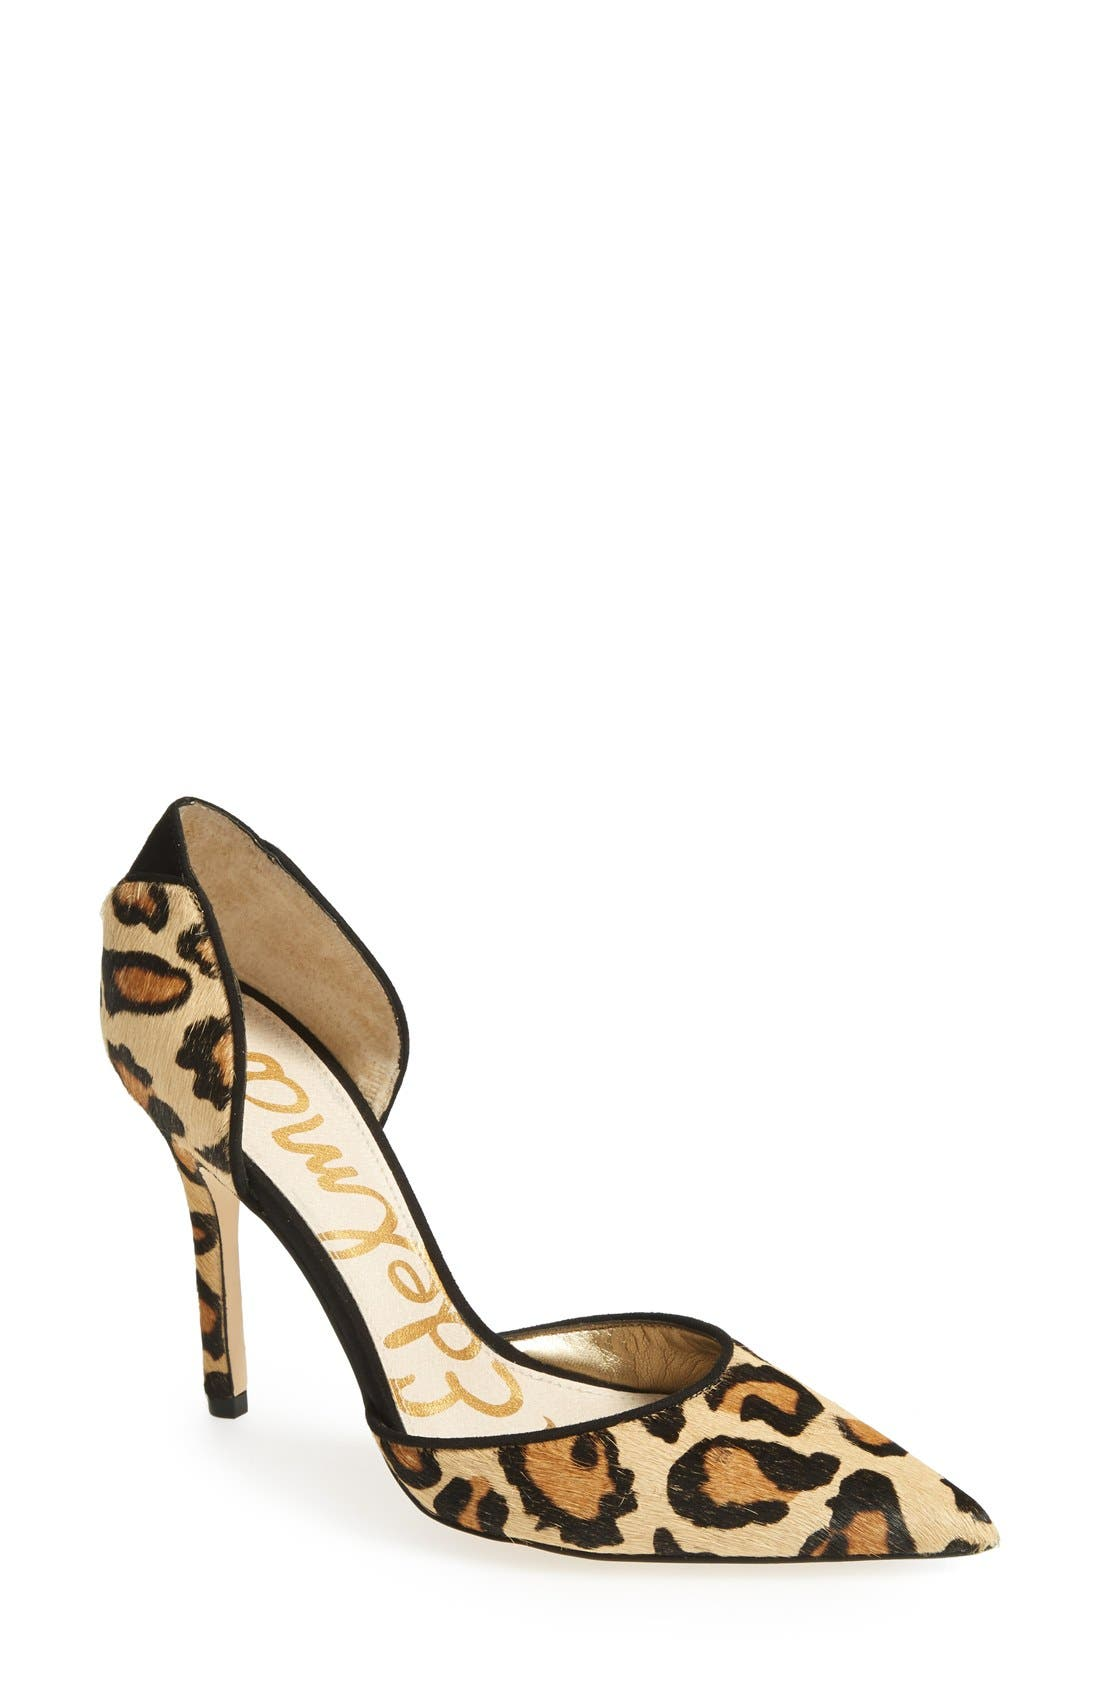 Alternate Image 1 Selected - Sam Edelman 'Delilah' Calf Hair d'Orsay Pump (Women)